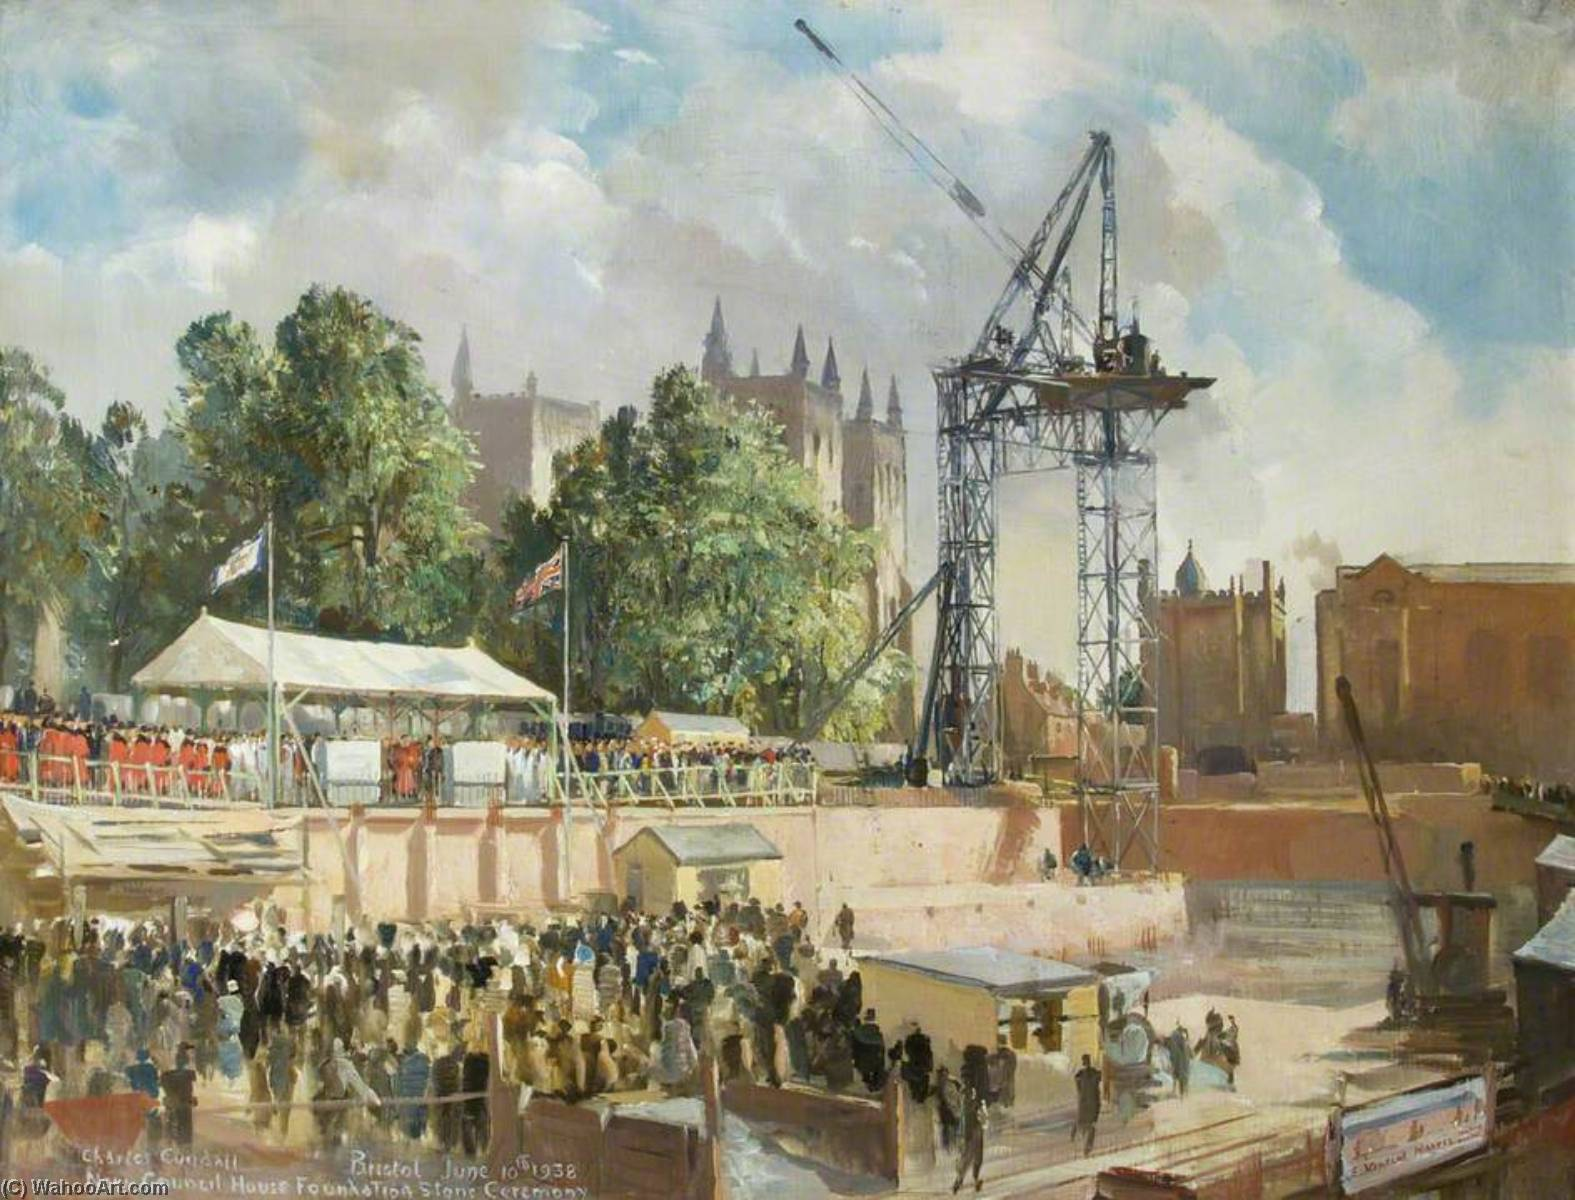 New Council House Foundation Stone Ceremony, 10th June 1938, Oil On Canvas by Charles Ernest Cundall